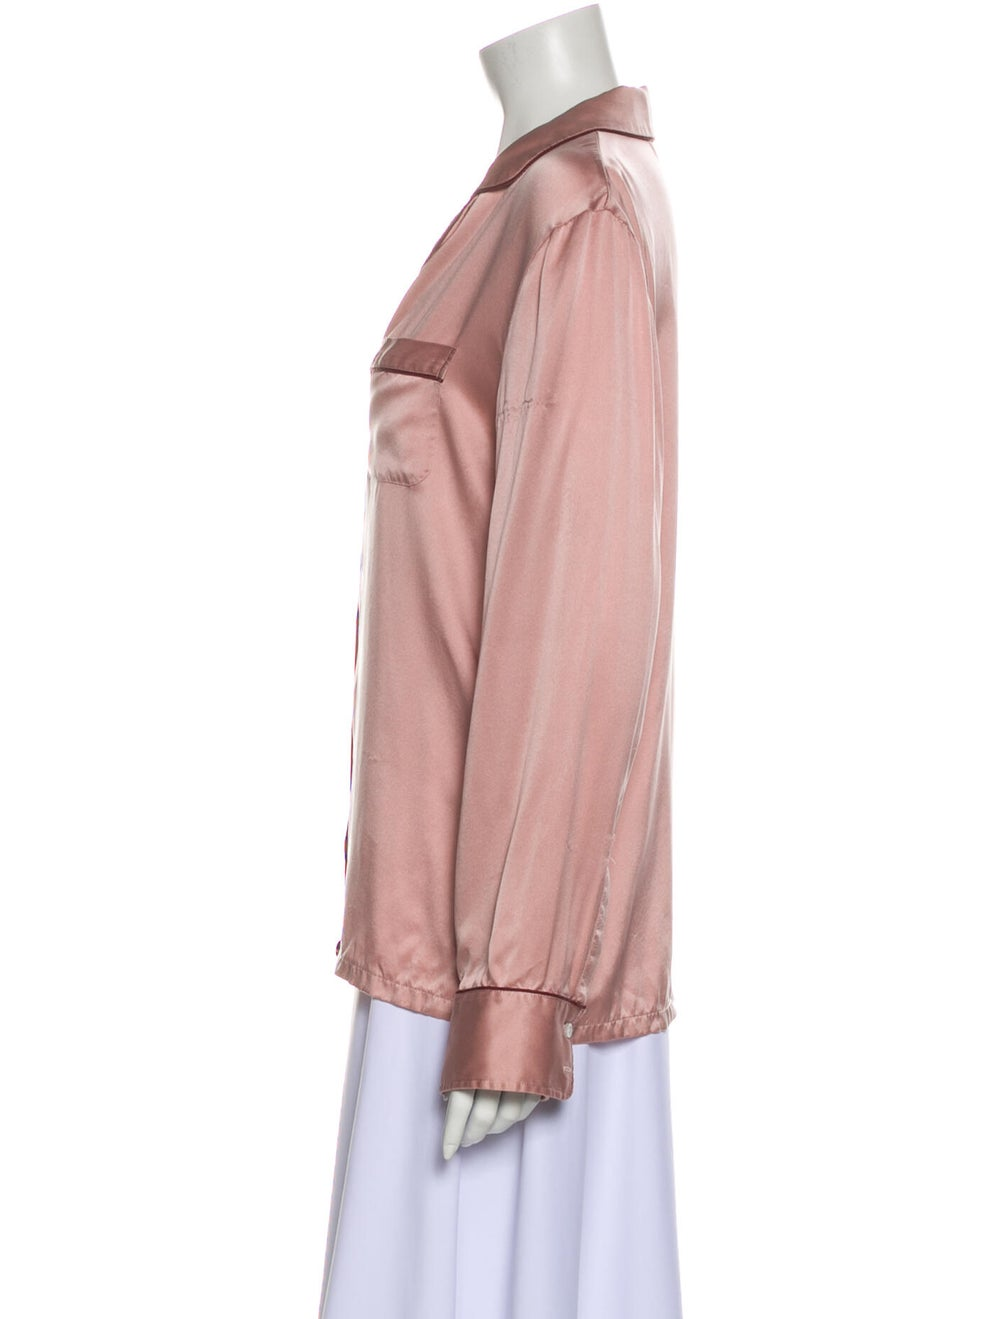 Stella McCartney Silk Pajamas Pink - image 2